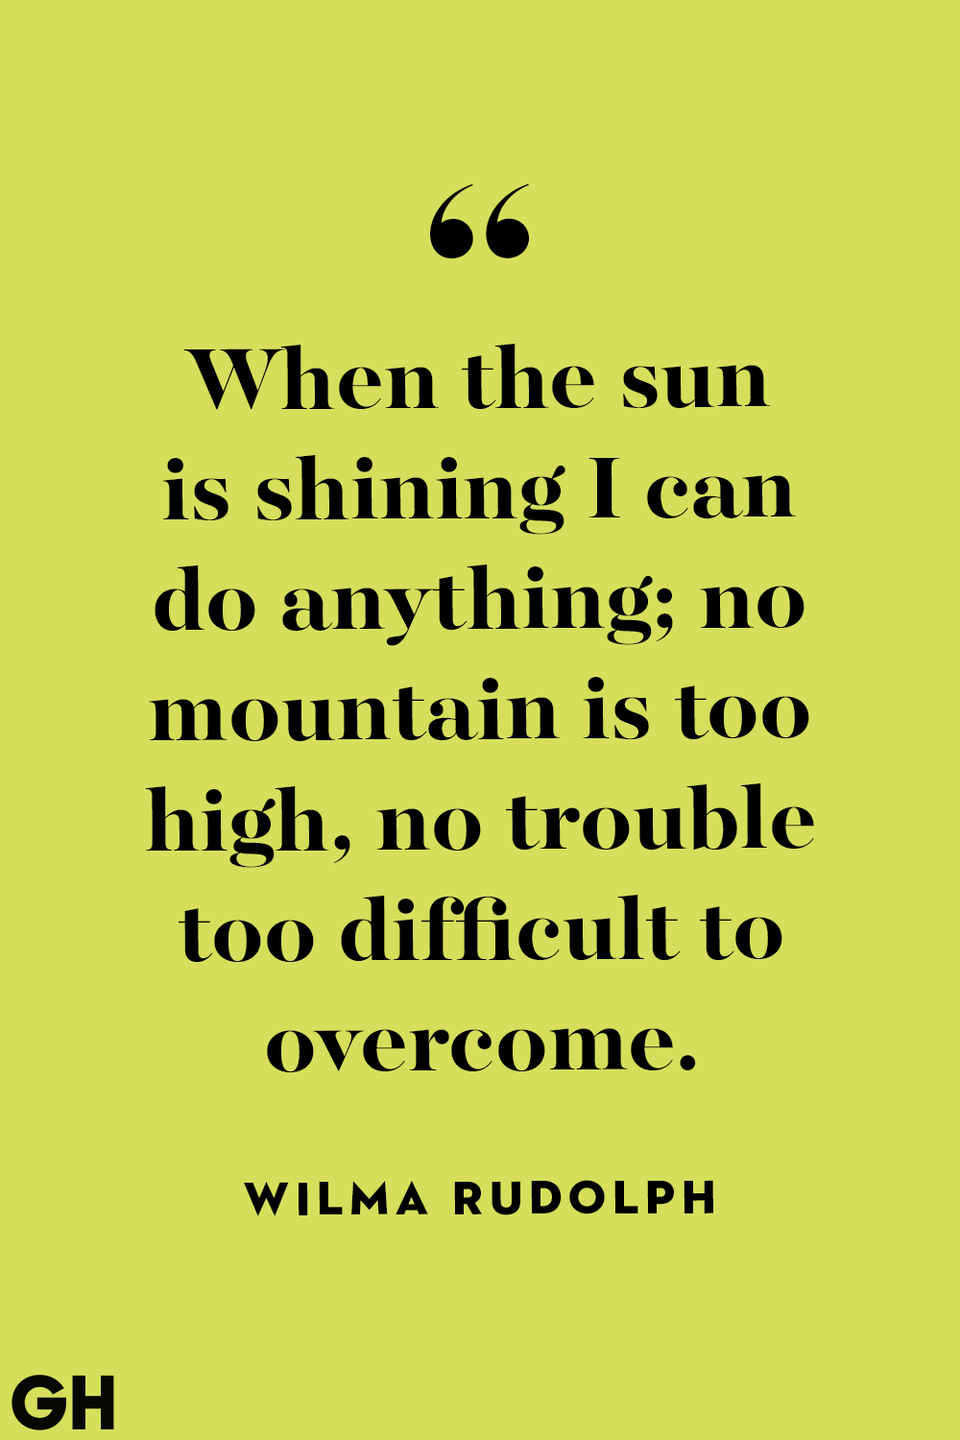 <p>When the sun is shining I can do anything; no mountain is too high, no trouble too difficult to overcome.</p>